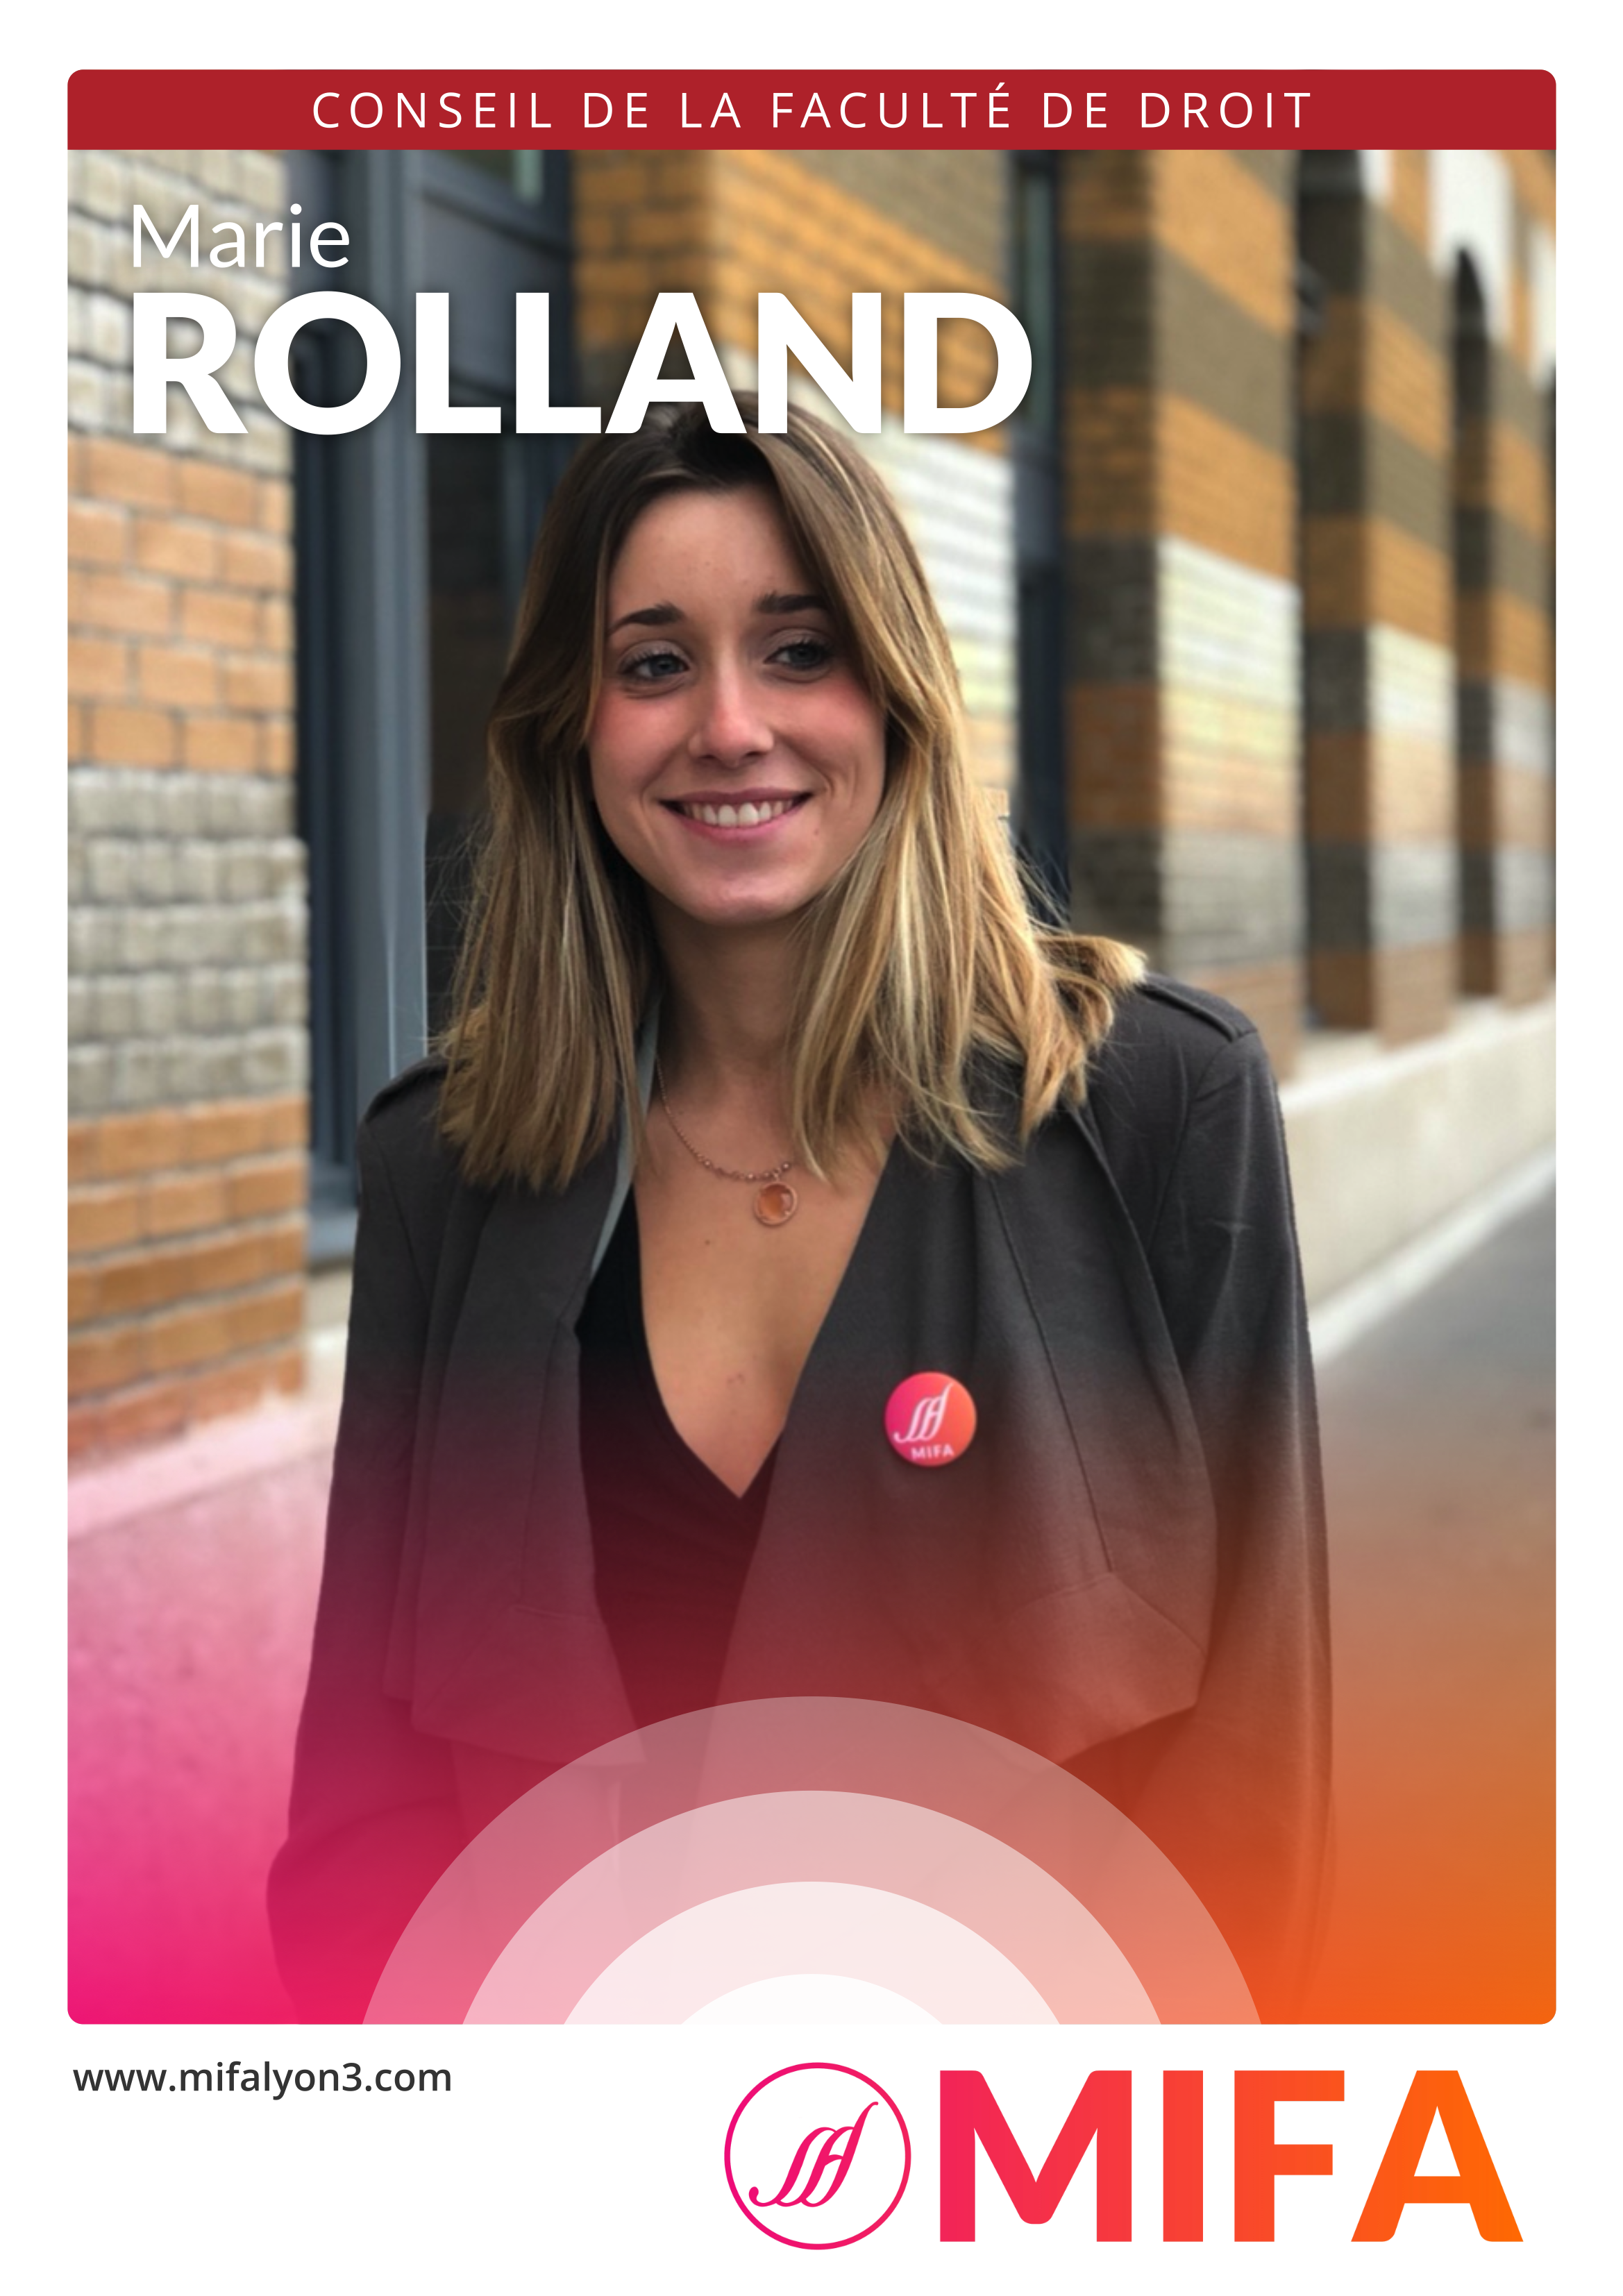 Marie ROLLAND